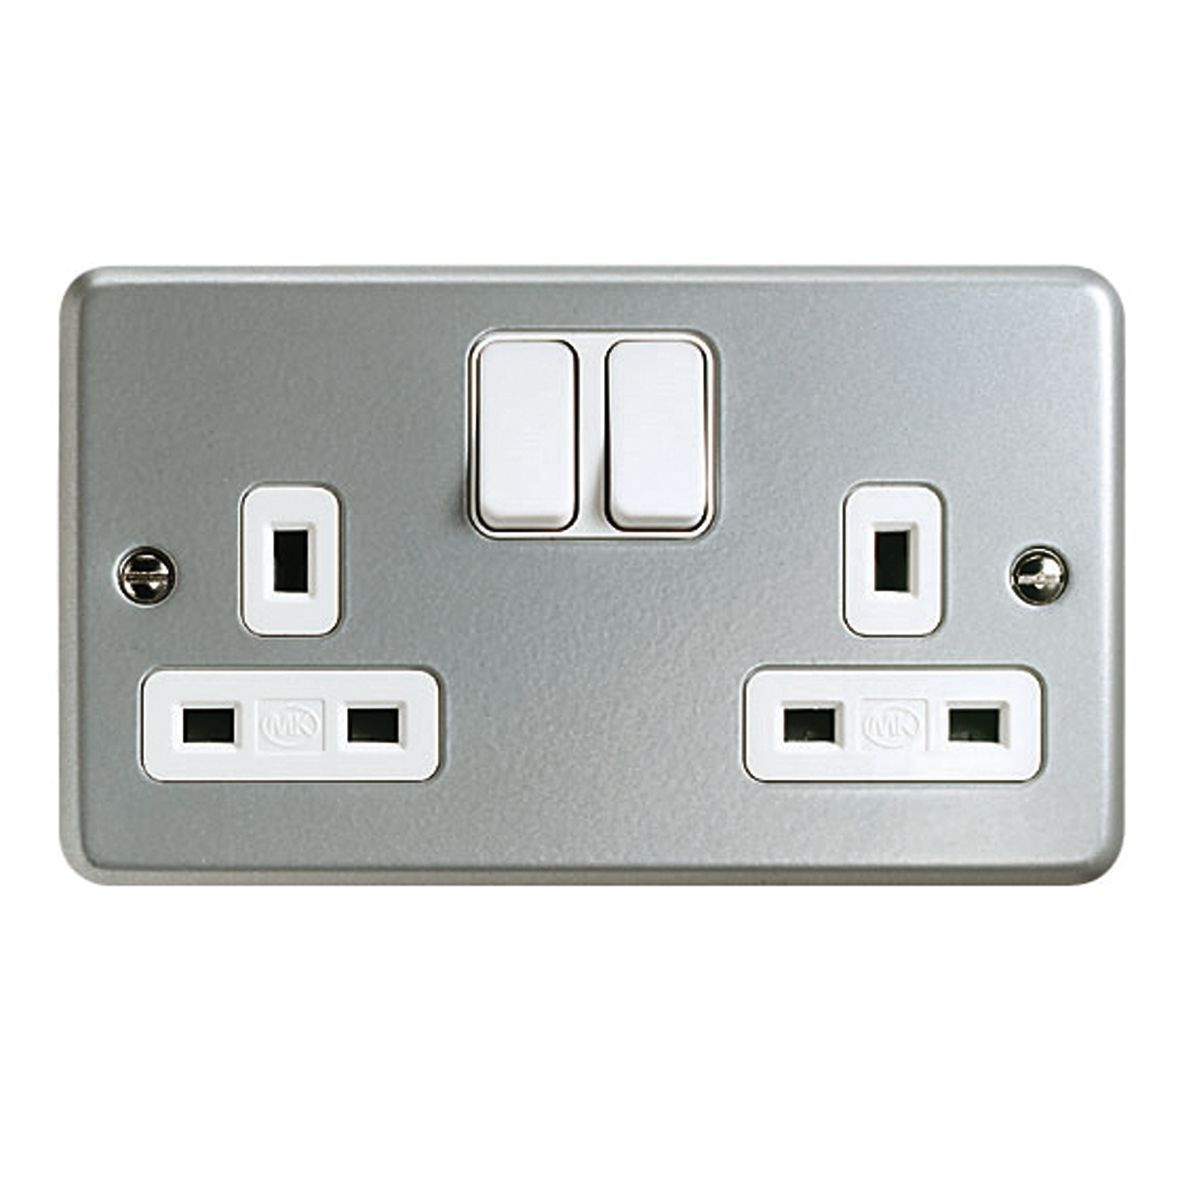 MK 13A Metal-Clad Switched Double Socket			MK 13A Metal-Clad Switched Double Socket